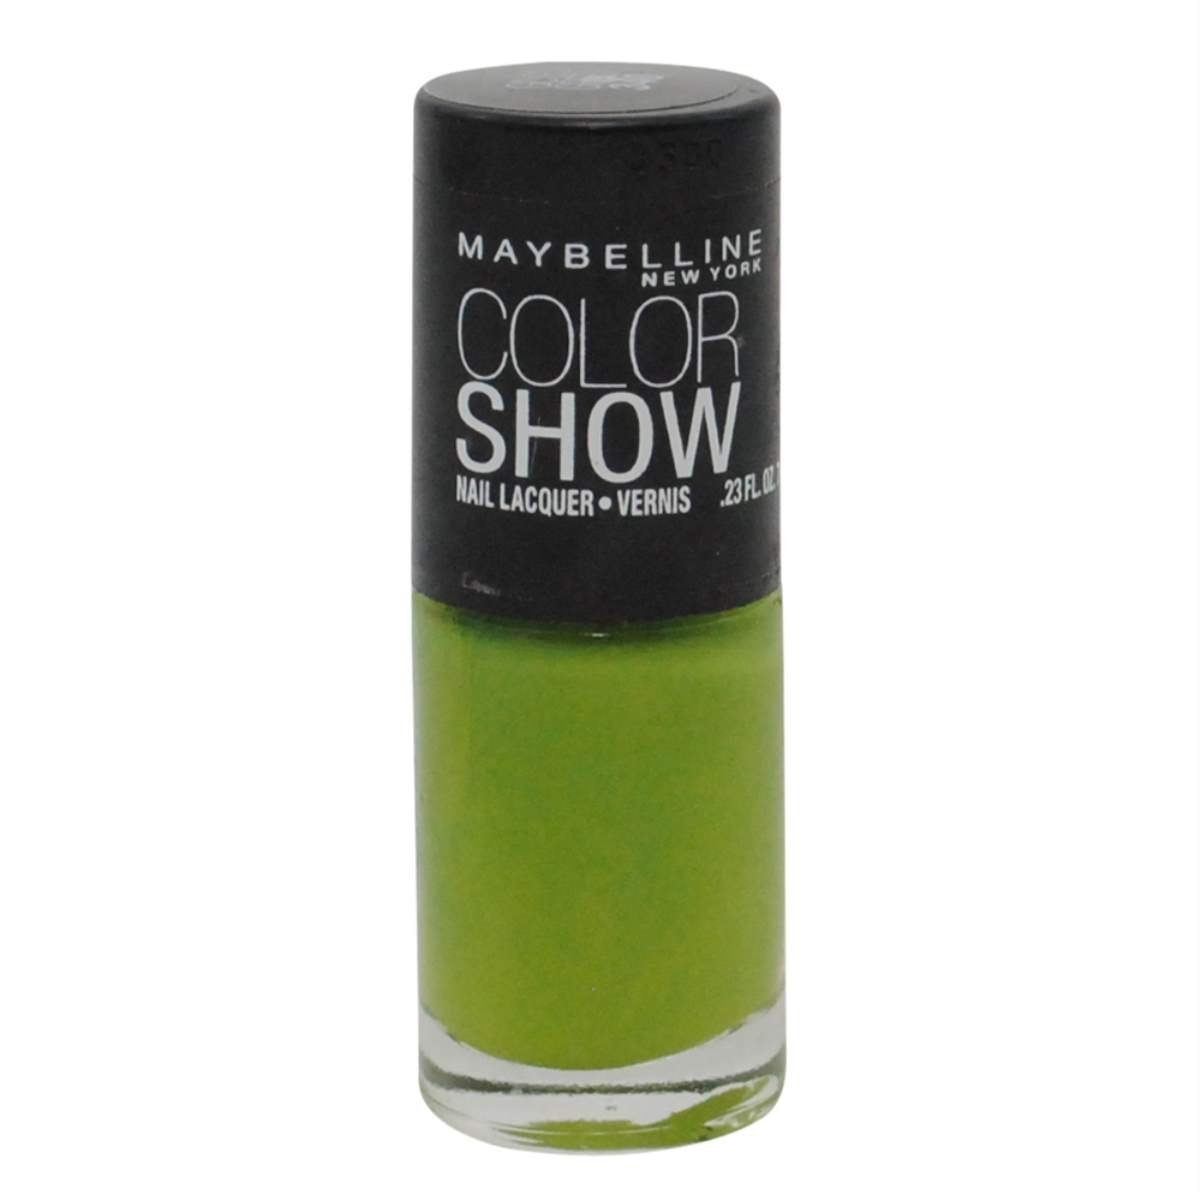 Maybelline Color Show Limited Edition Nail Polish, 340 Go Go Green (3 Pack)